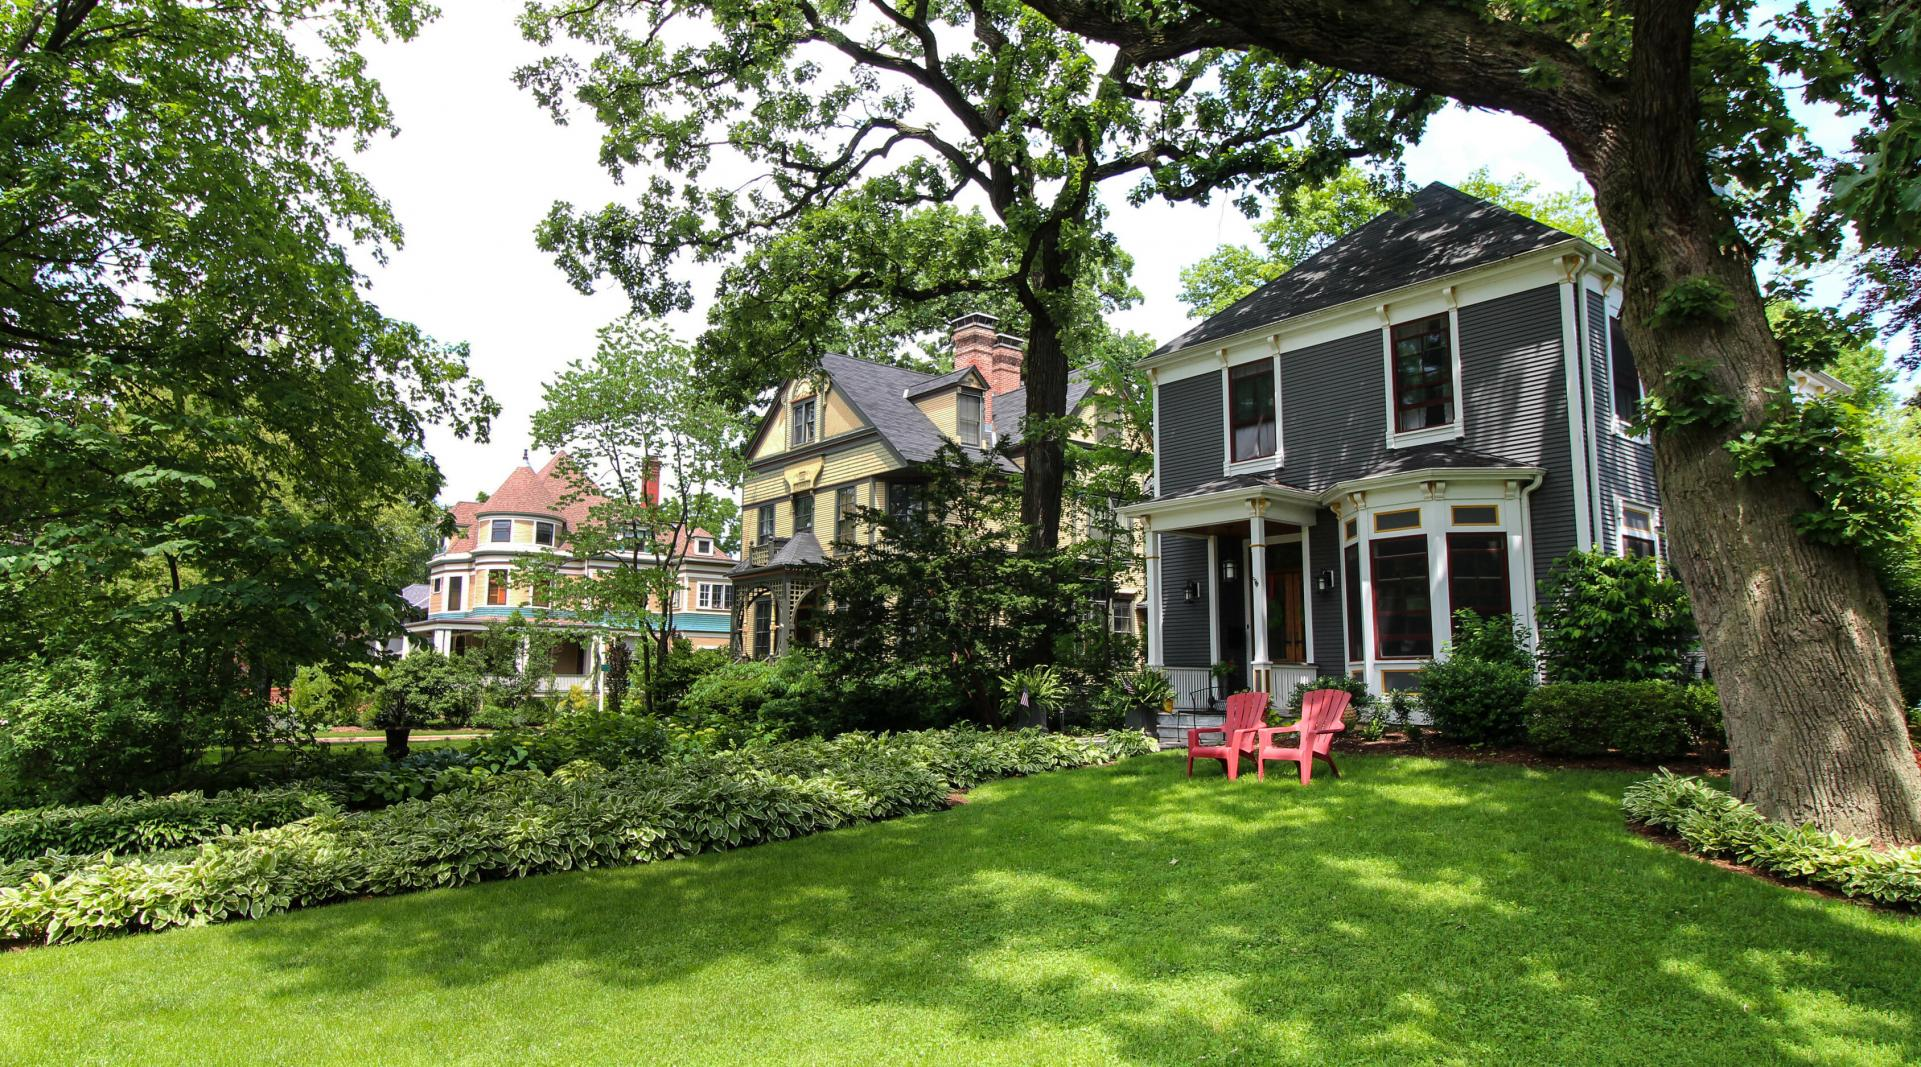 A Chicago home with large green front yard and red lawn chairs.